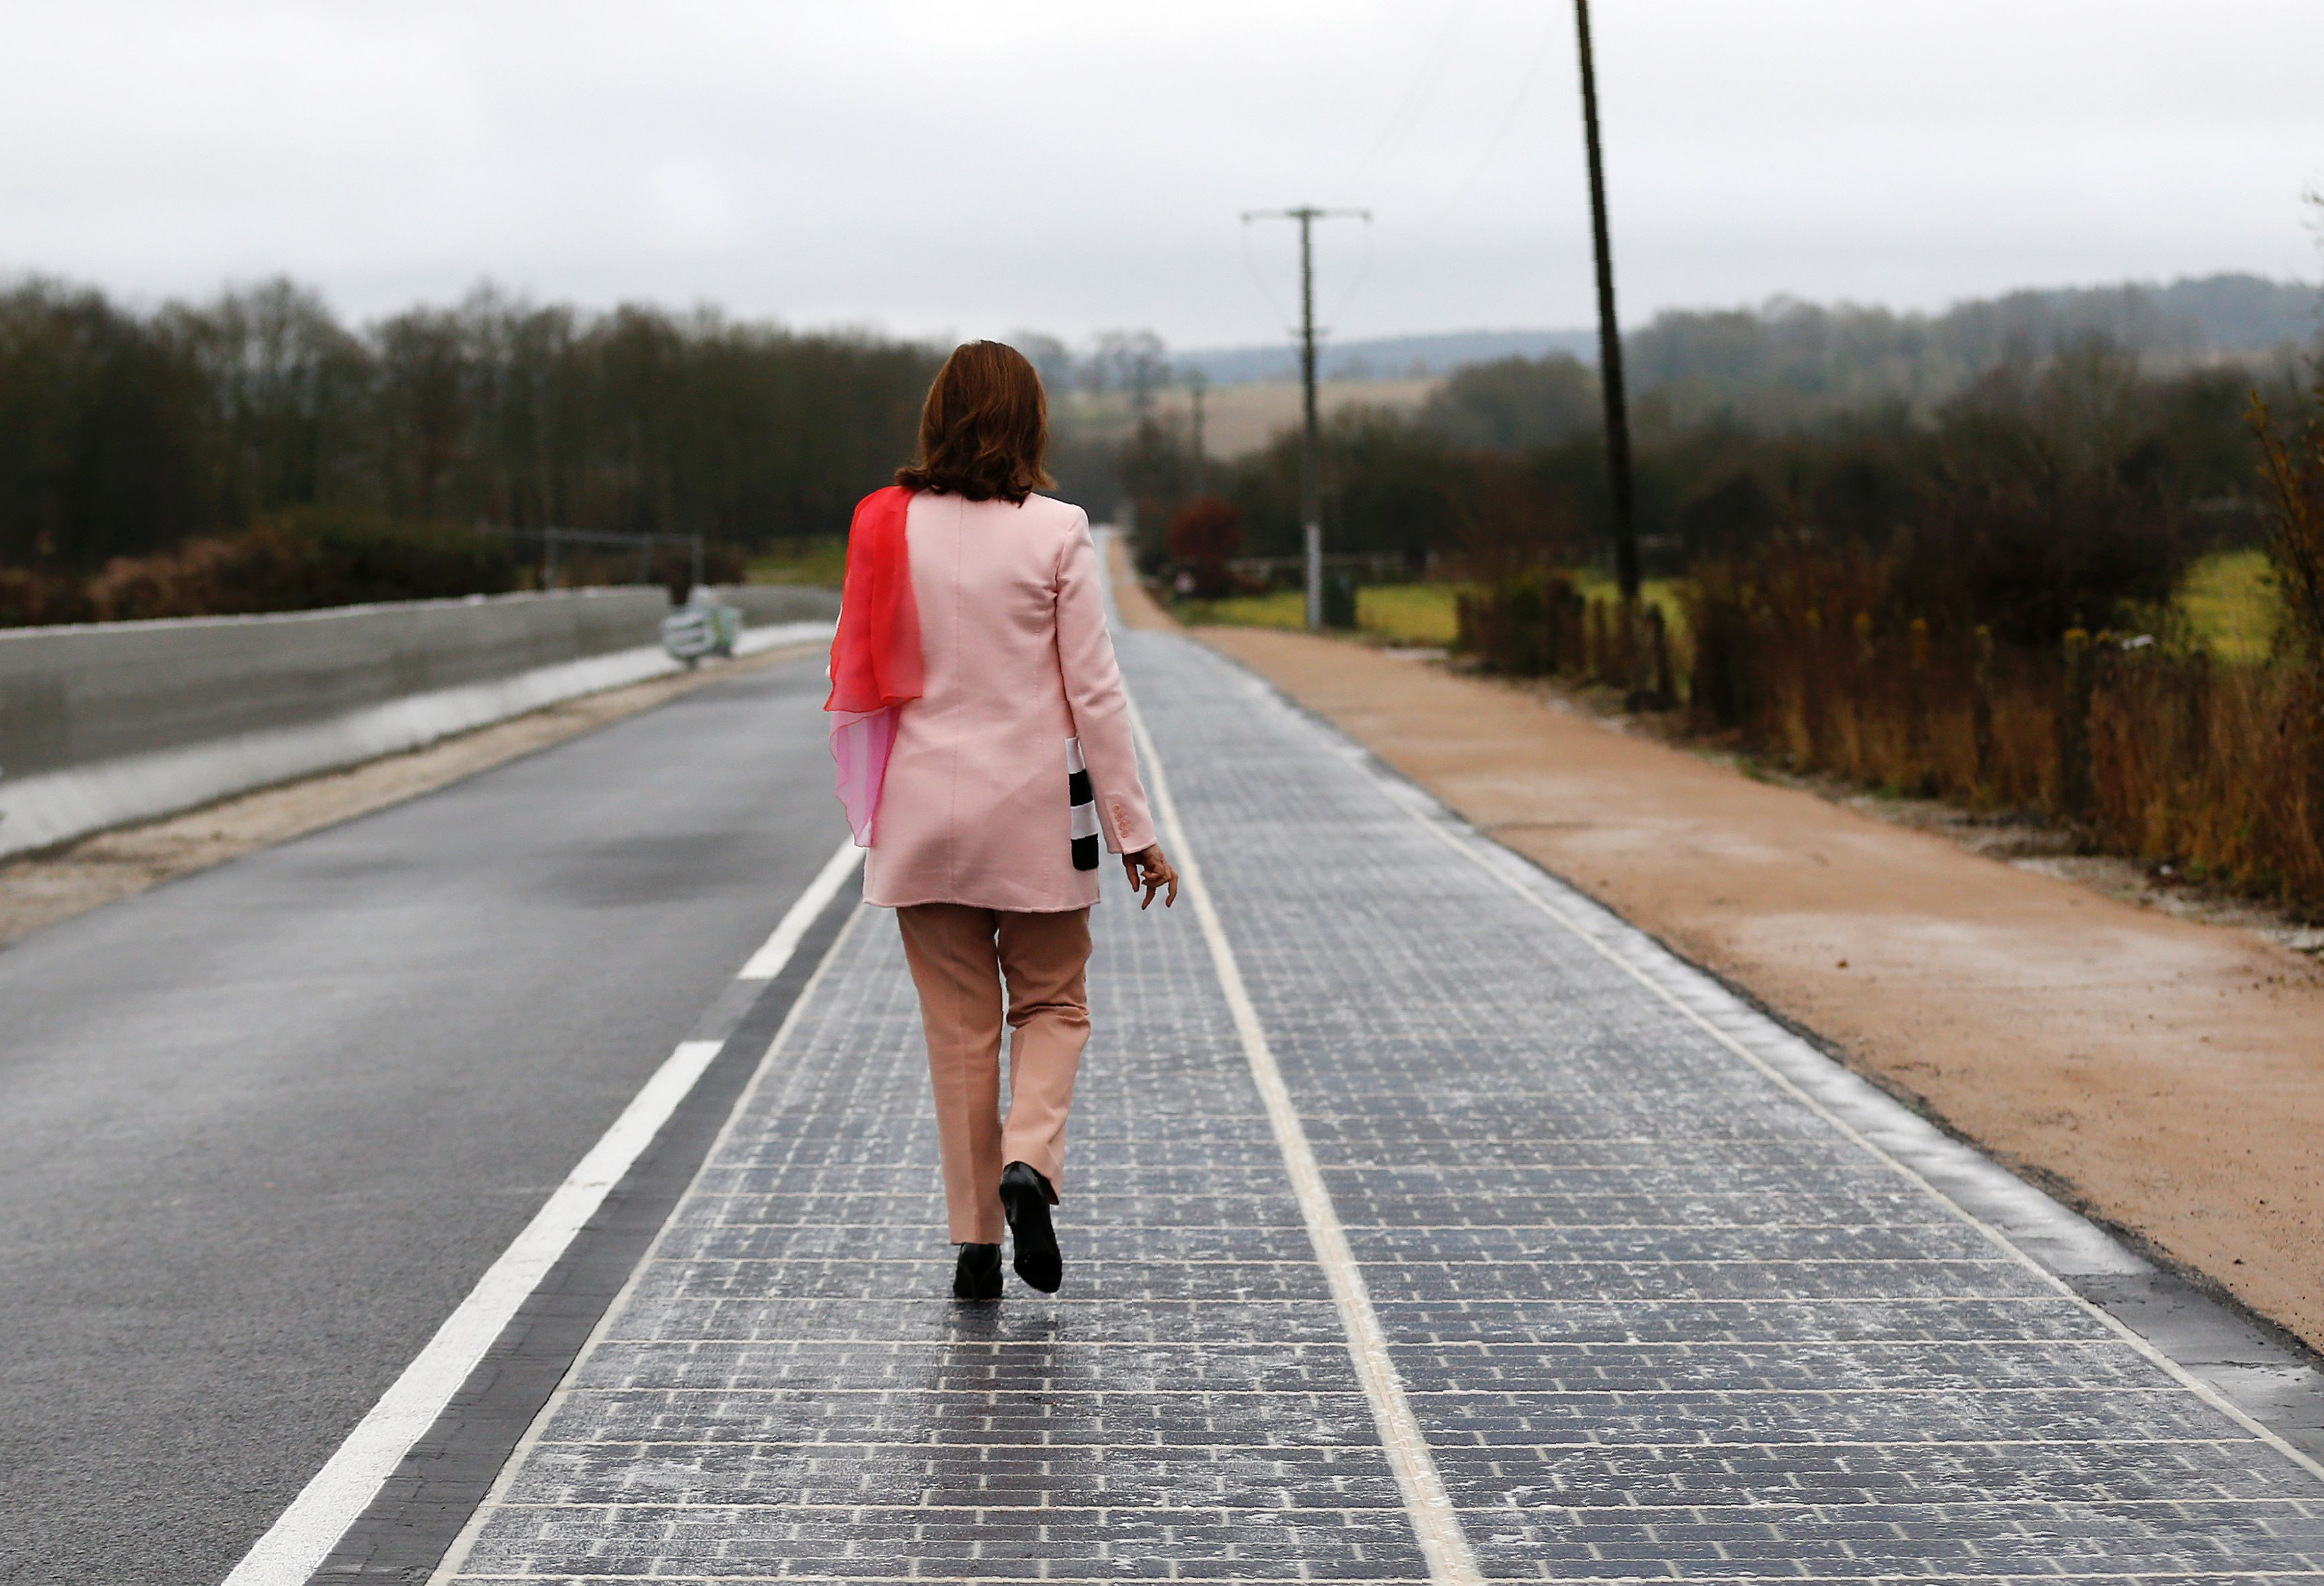 French Minister for Ecology, Sustainable Development and Energy Segolene Royal walks on a solar panel road during its inauguration in Tourouvre, France.